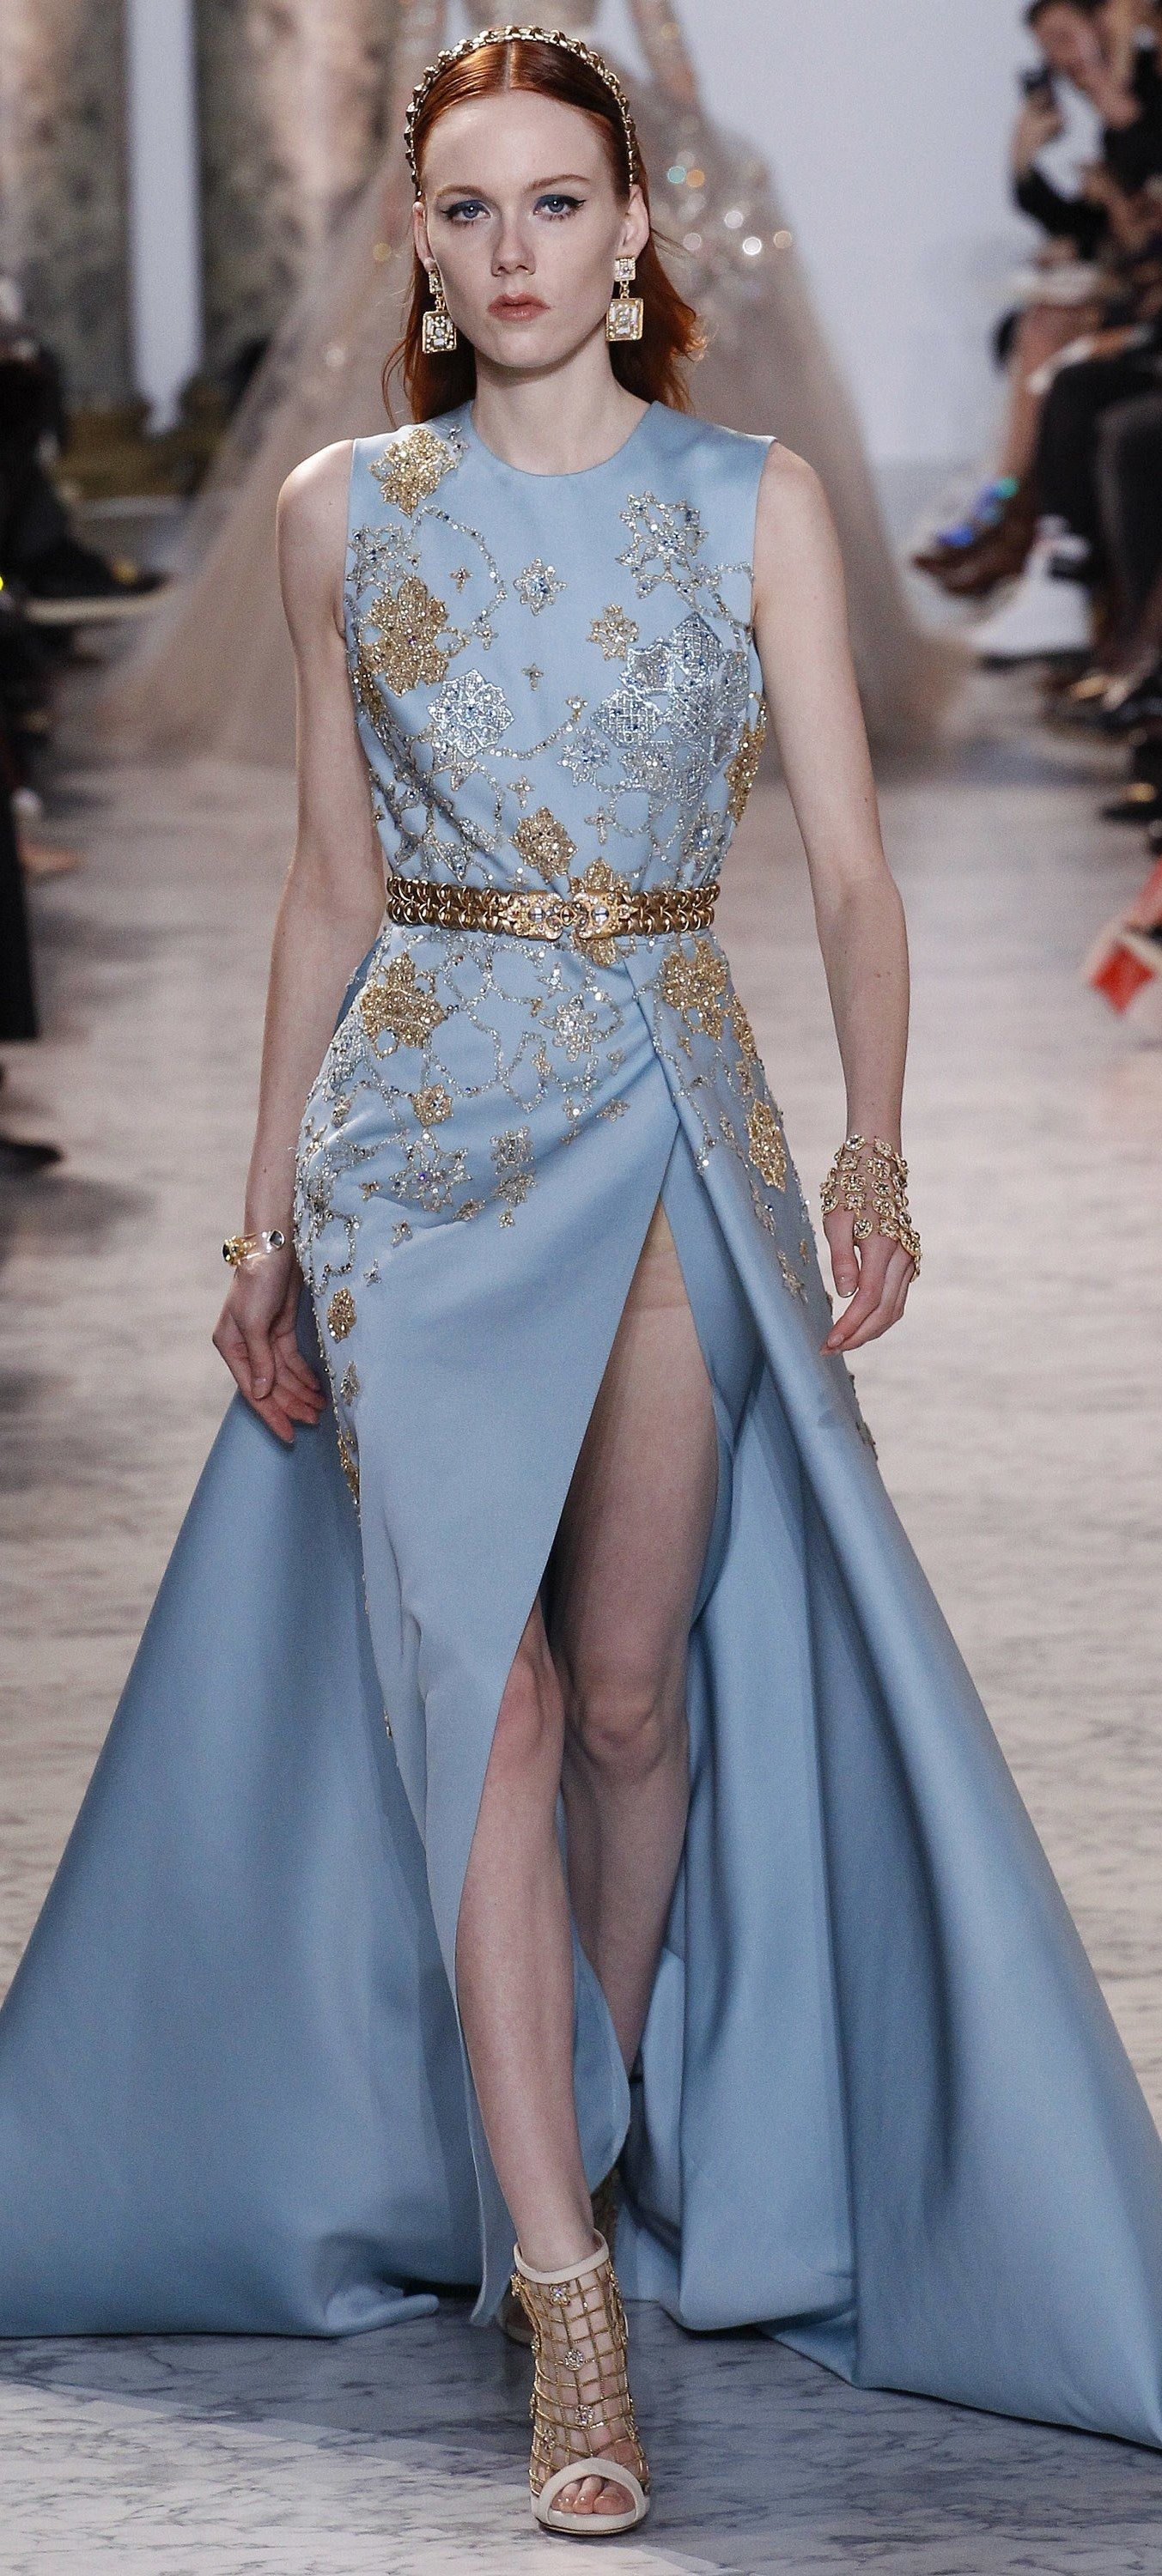 Elie Saab Haute Couture Spring 2017   Fashion Design, Dresses And ...